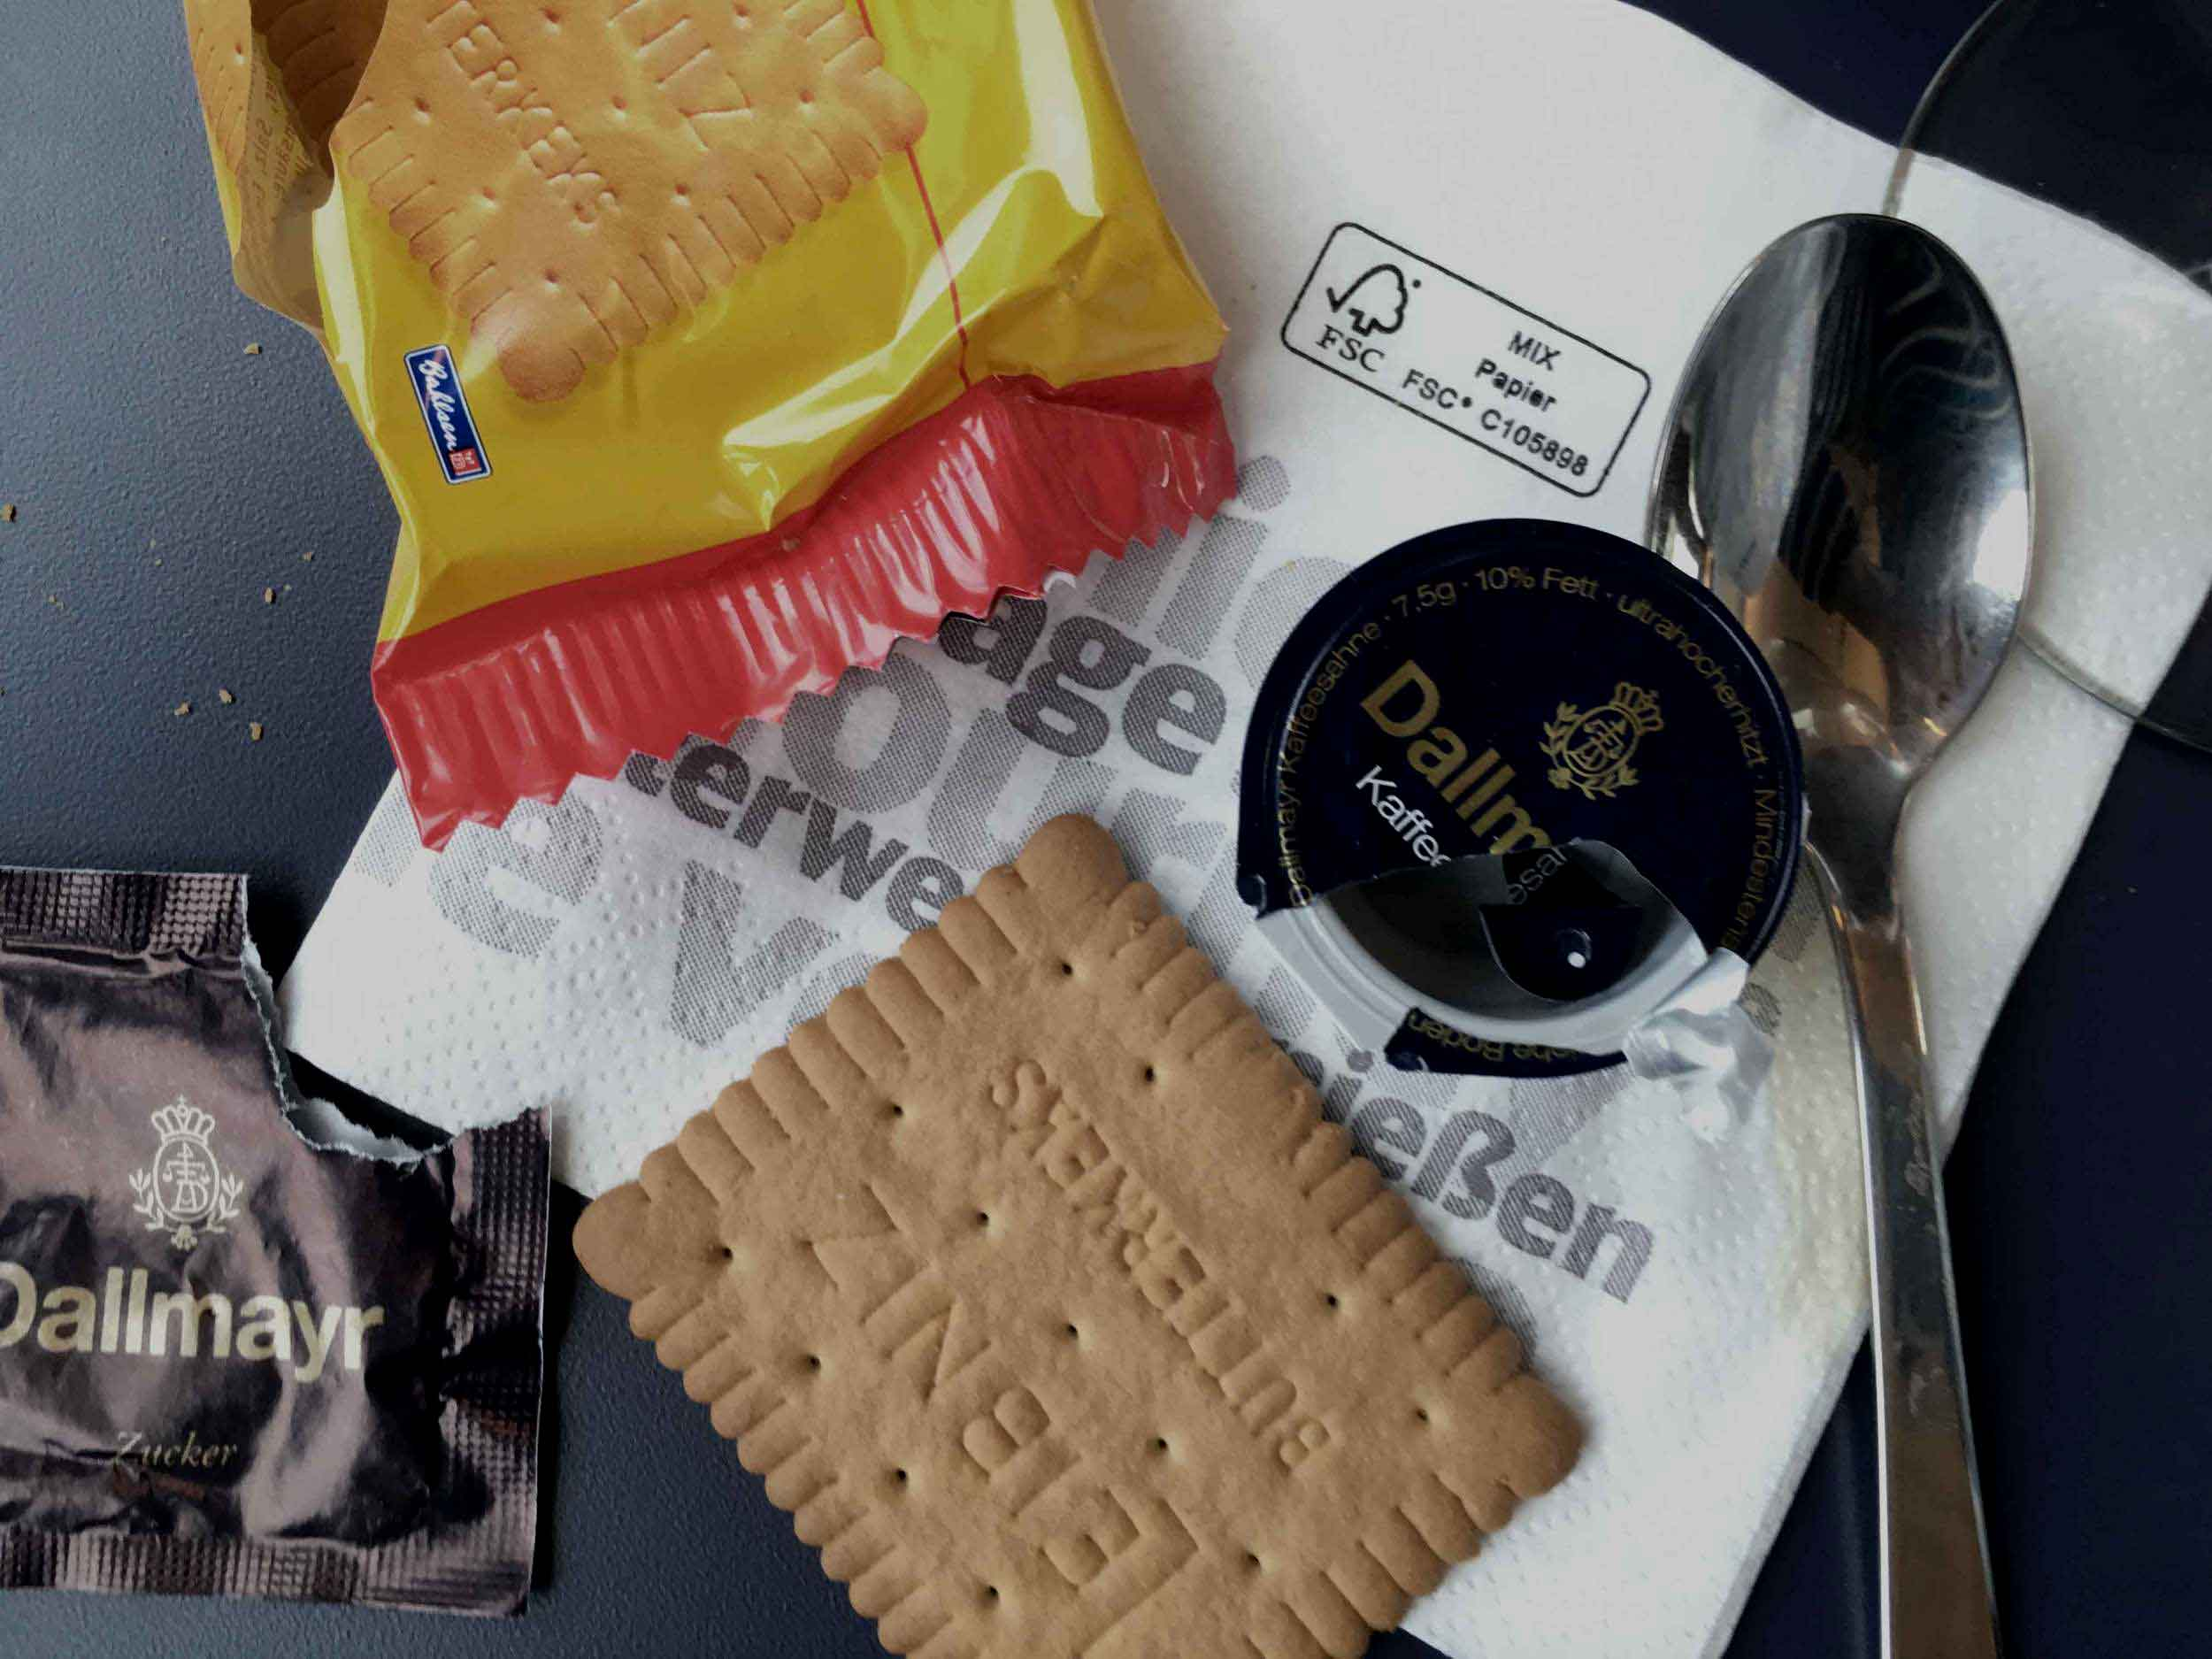 Cookies inside train,ICE, Inter City Express, First Class, German Rail. Image©thingstodot.com